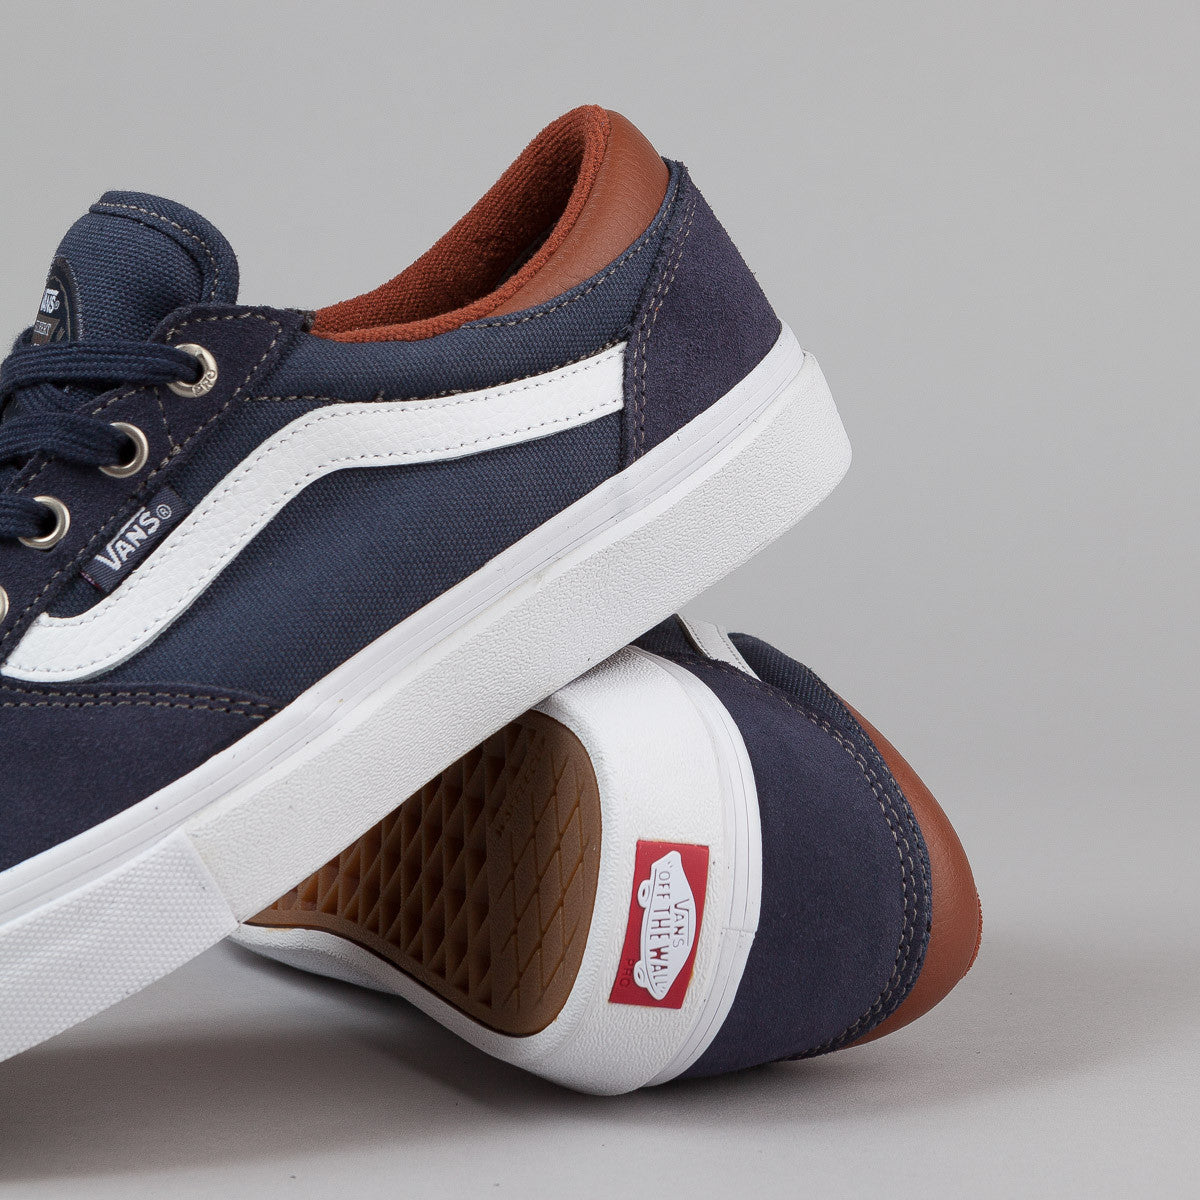 Vans Gilbert Crockett Pro Shoes - Navy / White